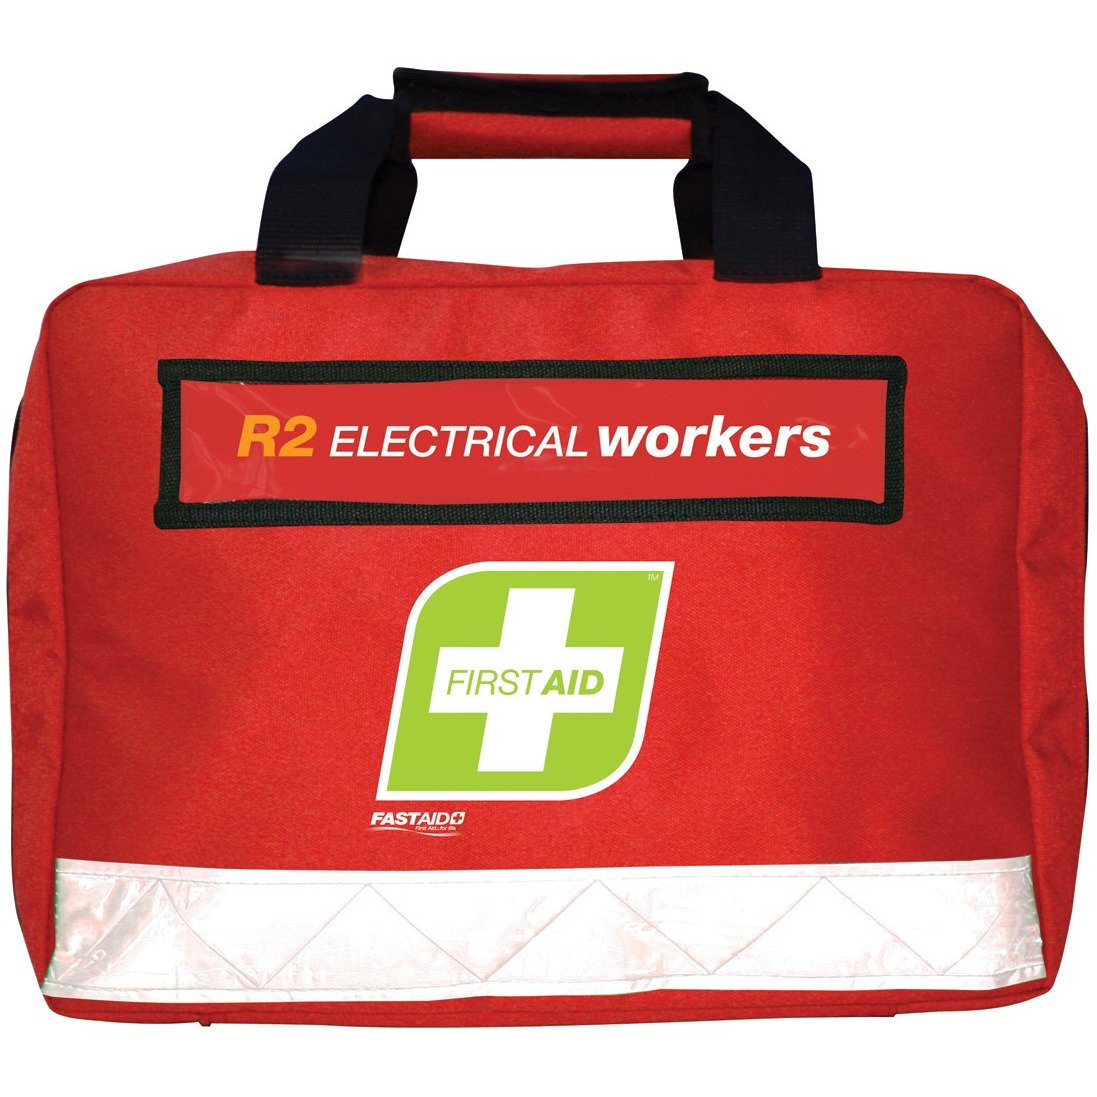 FastAid First Aid Kit- R2- Electrical Workers Kit- Soft Pack